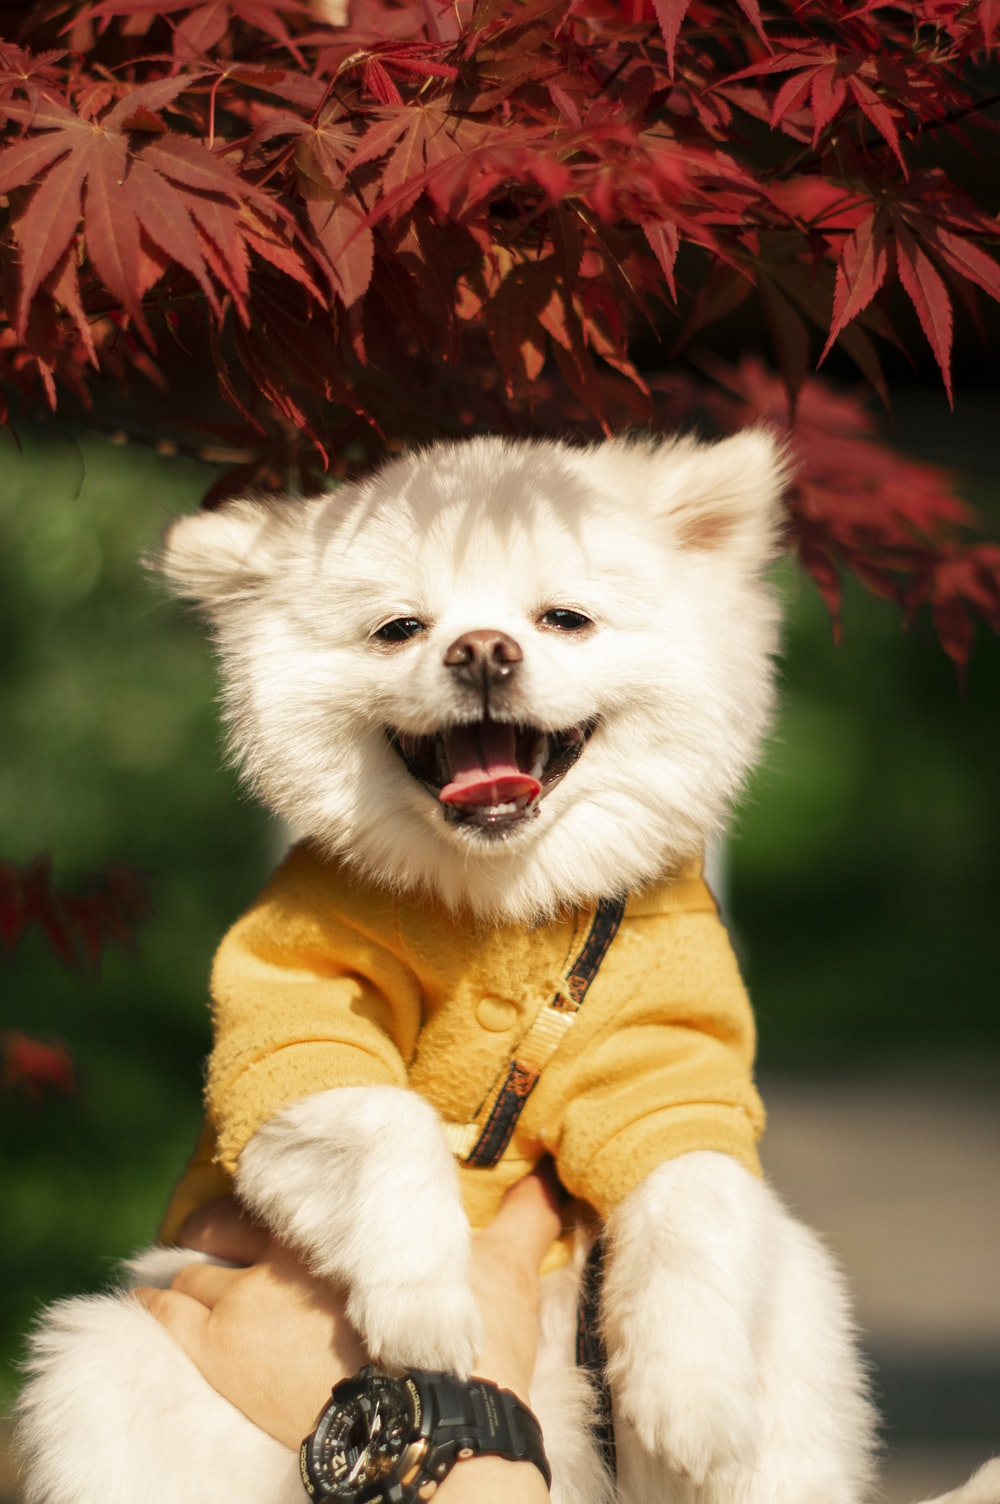 white pomeranian puppy wearing yellow and red coat